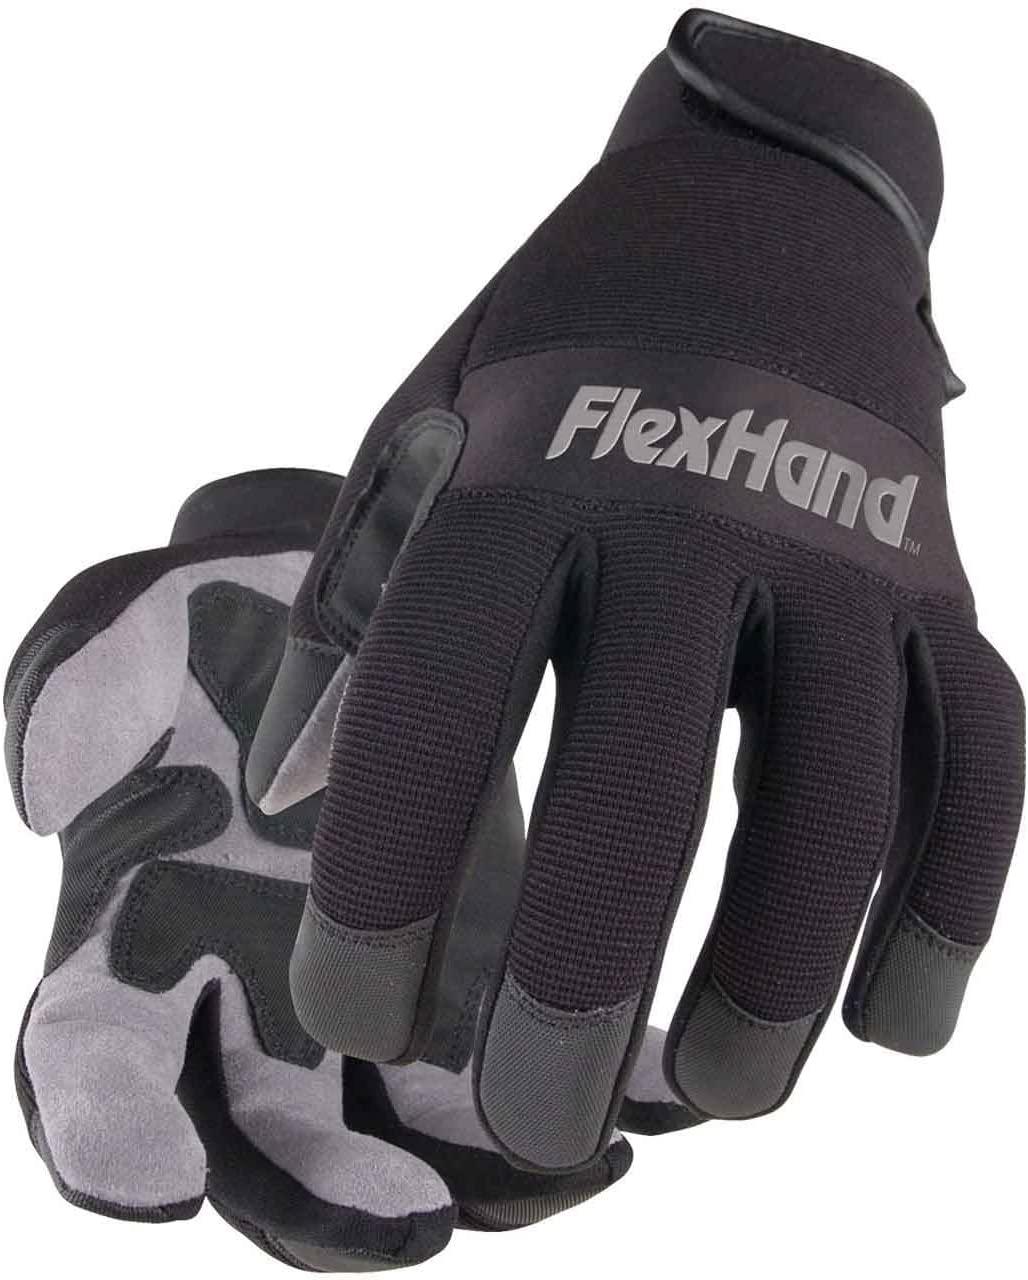 Black Stallion 19FX-BLK FlexHand Reinforced Mechanics Gloves, Large